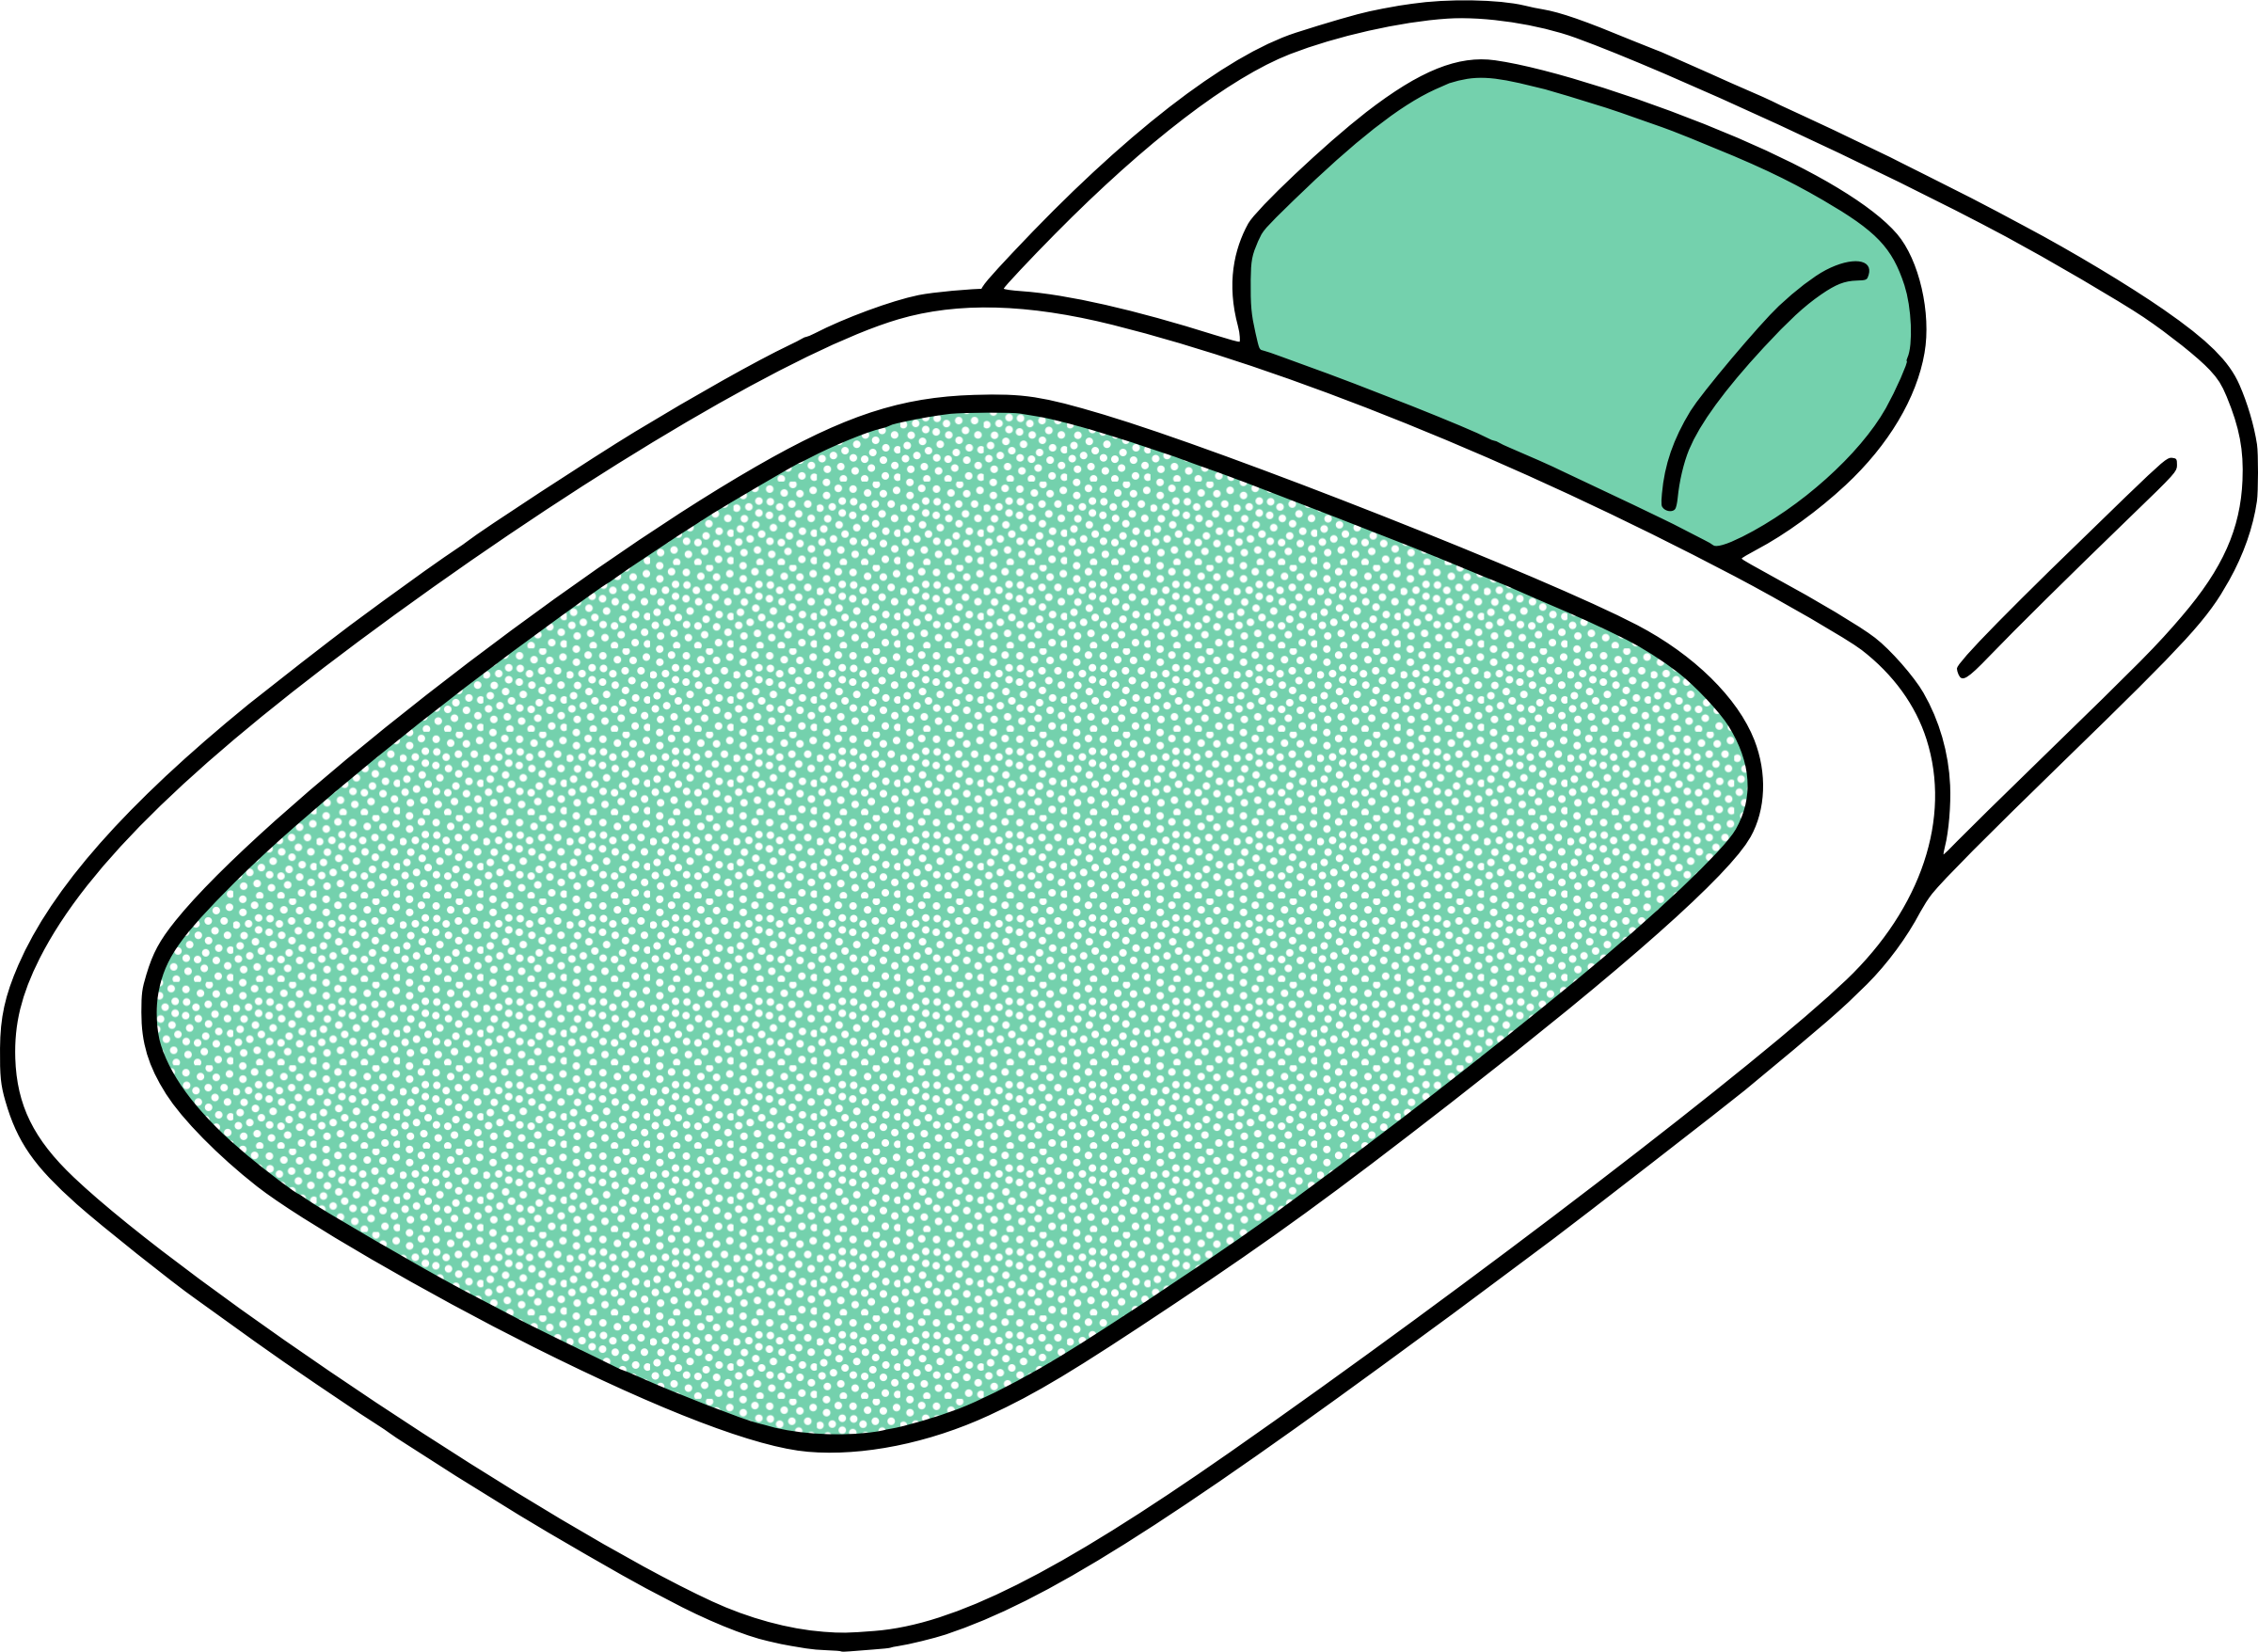 Futon Bed vector clipart image.